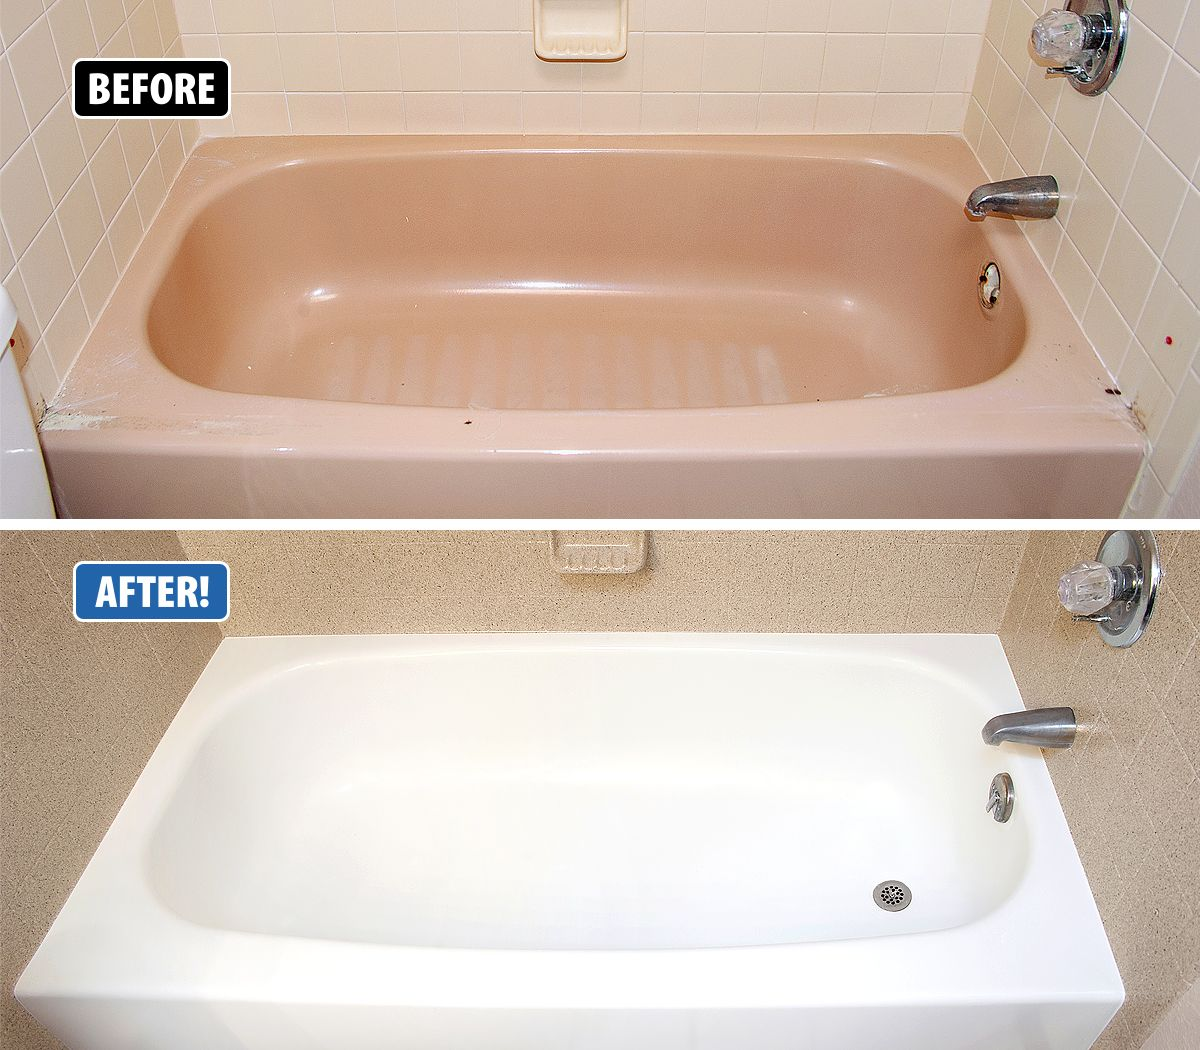 Bathtub Refinishing With Images Refinish Bathtub Tub Refinishing Bathtub Remodel